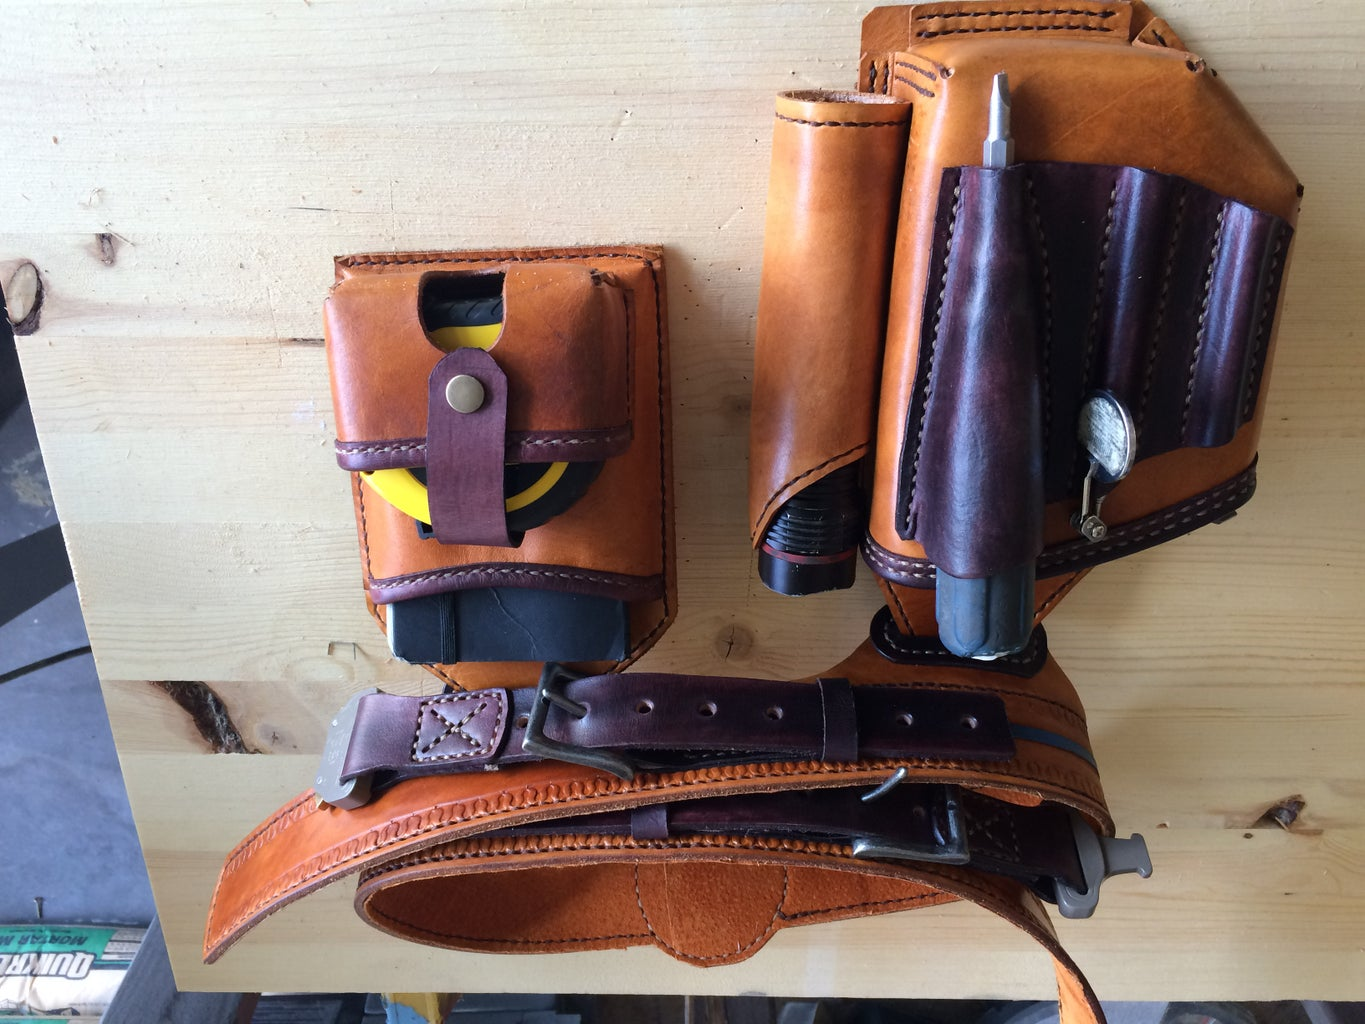 Pouch Assembly and Finishing